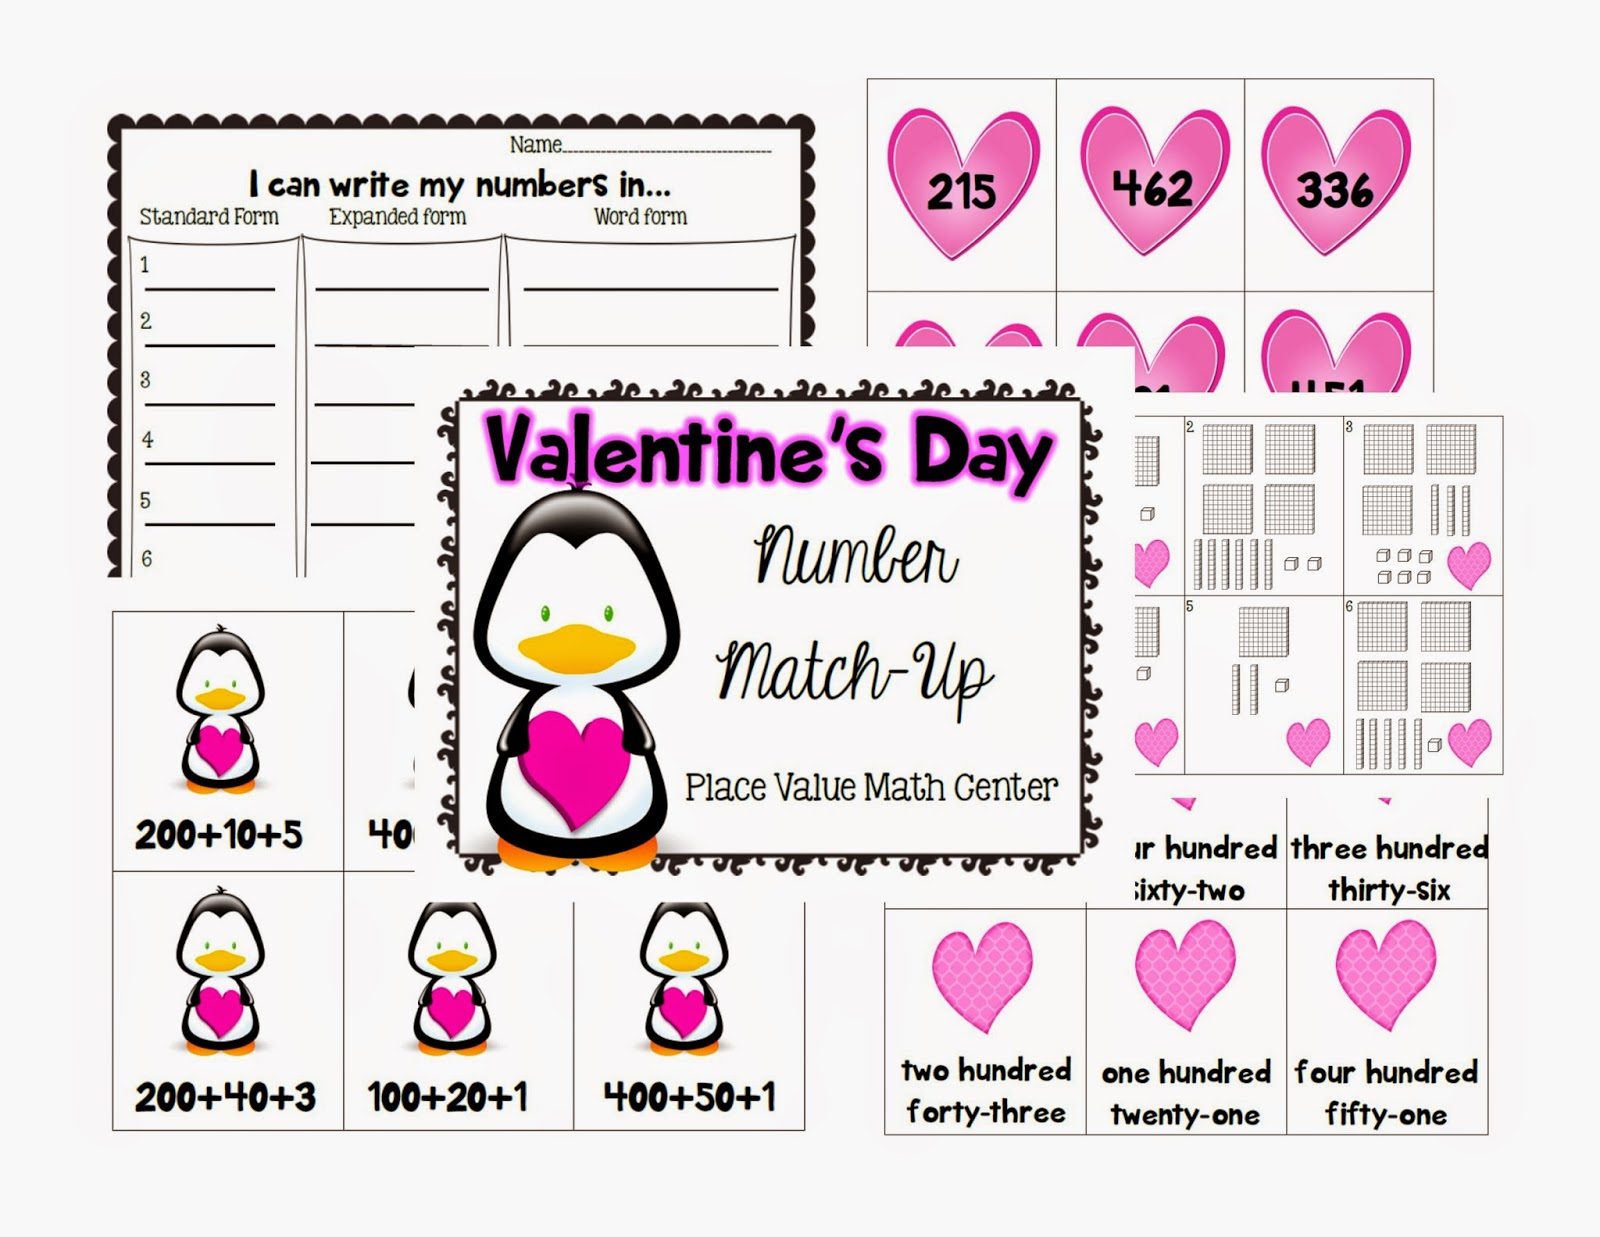 https://www.teacherspayteachers.com/Product/Valentines-Day-Number-Match-Up-3-digit-Place-Value-Math-Center-1671219